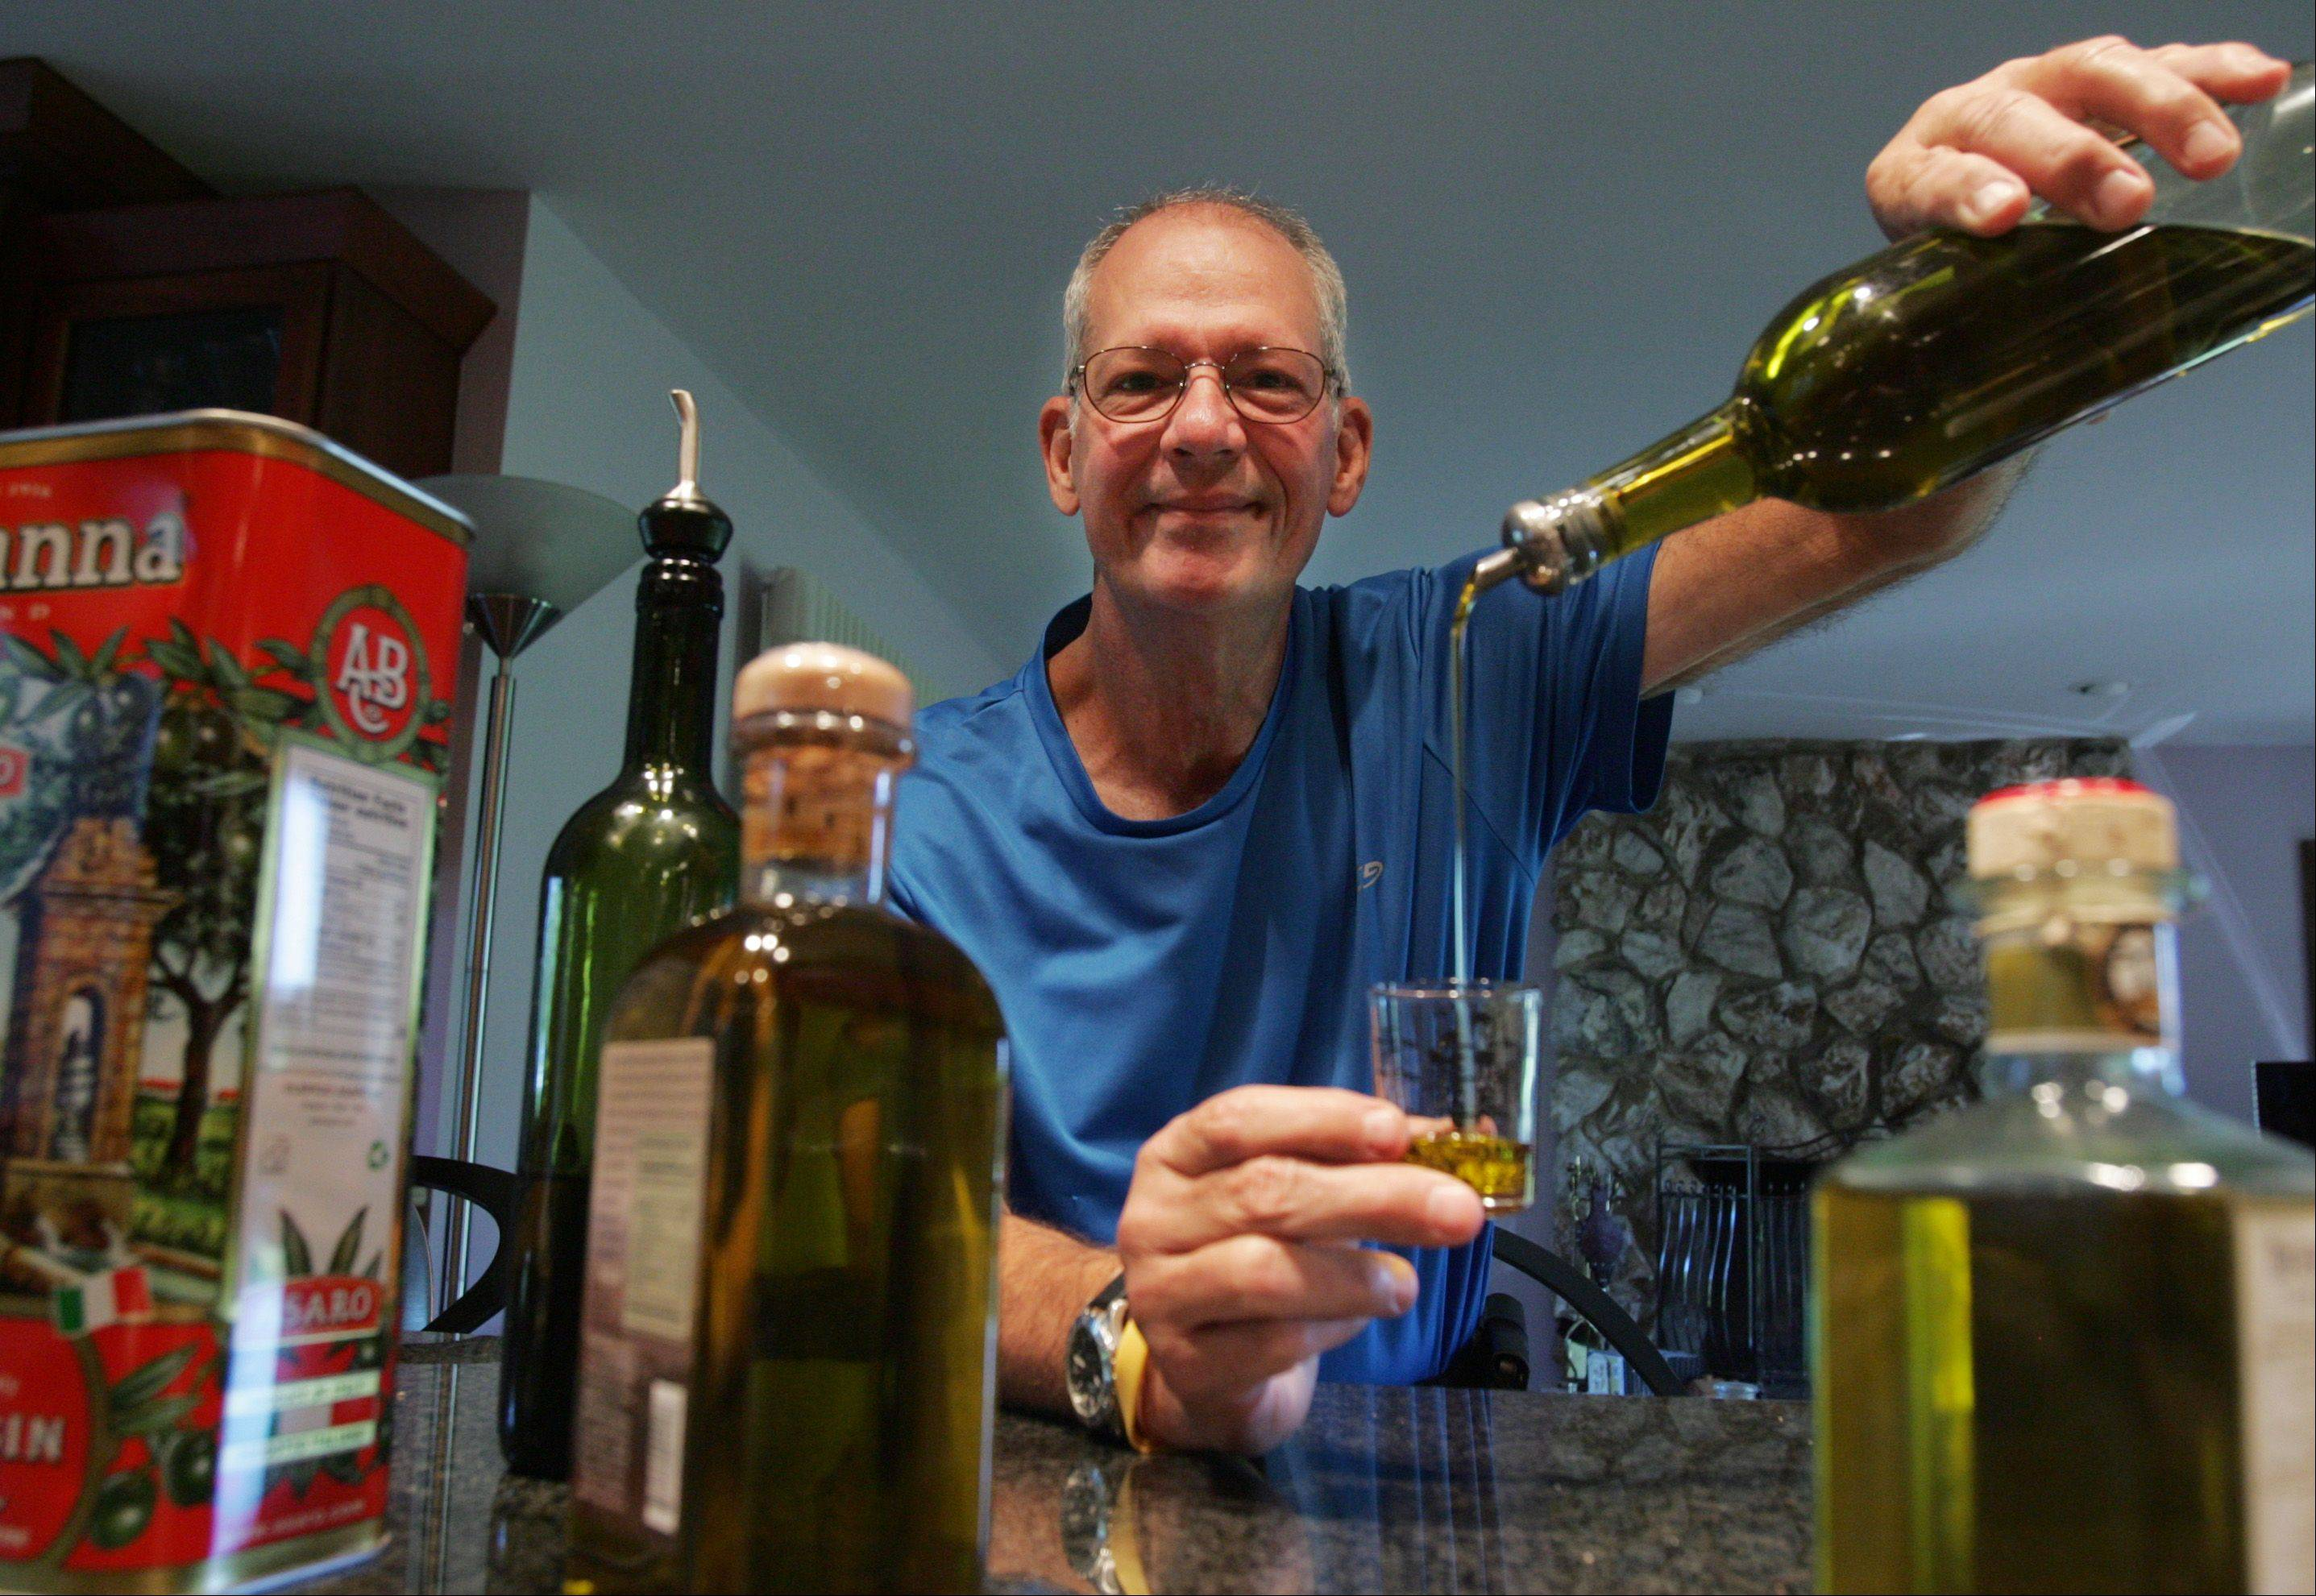 Olive oil is liquid gold to Nick Brenkus of West Dundee, one of the Cook of the Week Challenge contestants.